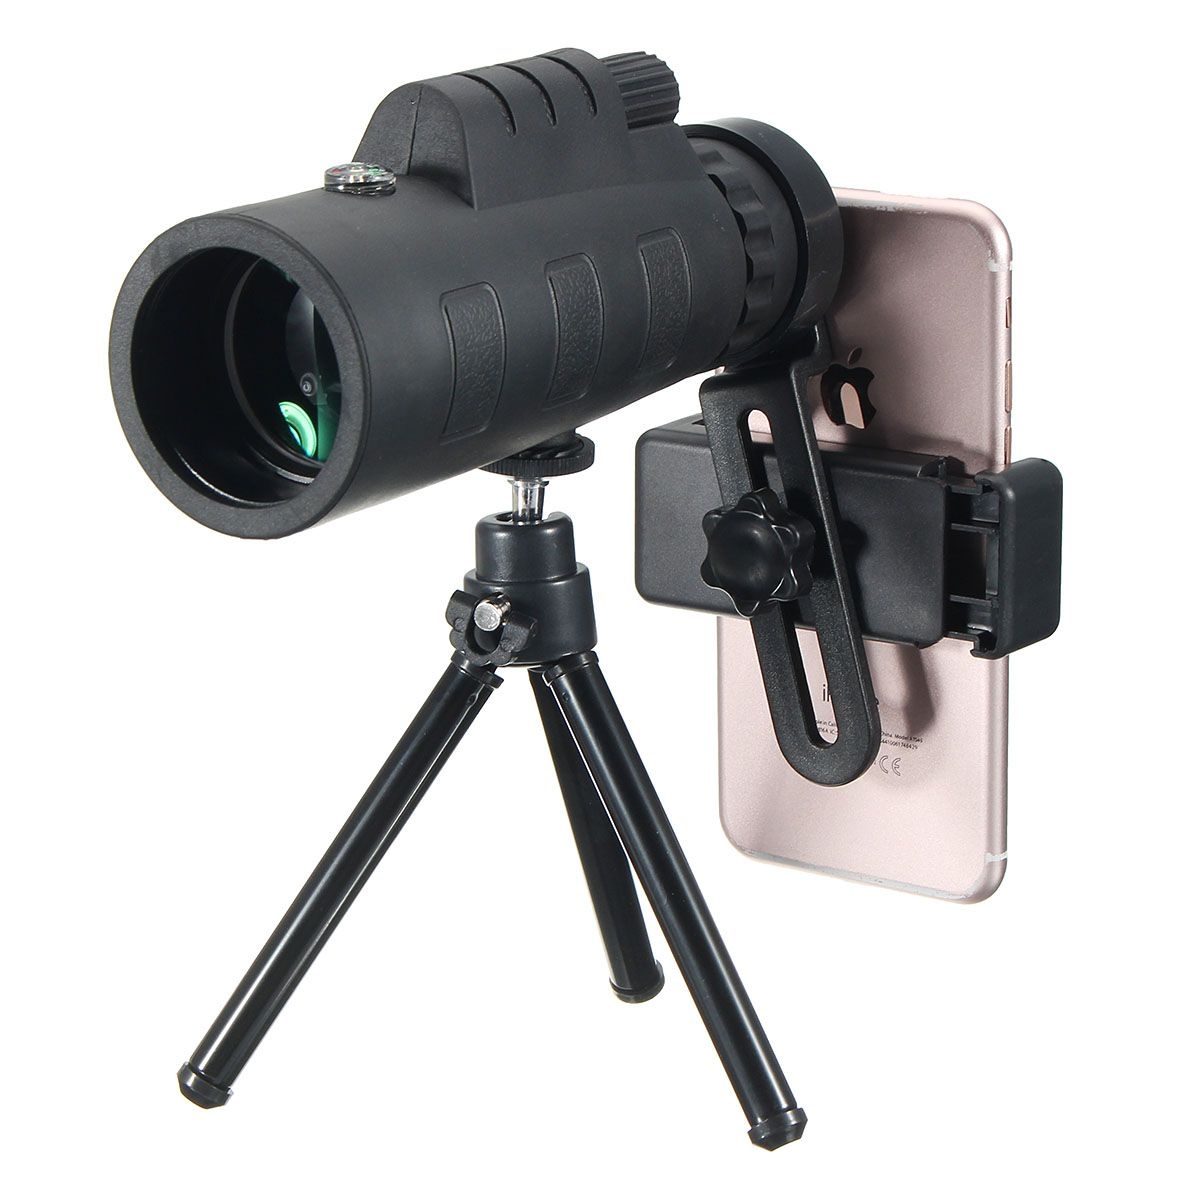 NEW 12X Telescope Monocular Lens Telephoto Lens Camping Outdoor Phone Holder Clip Universal for iPhone Android Mobile Phones